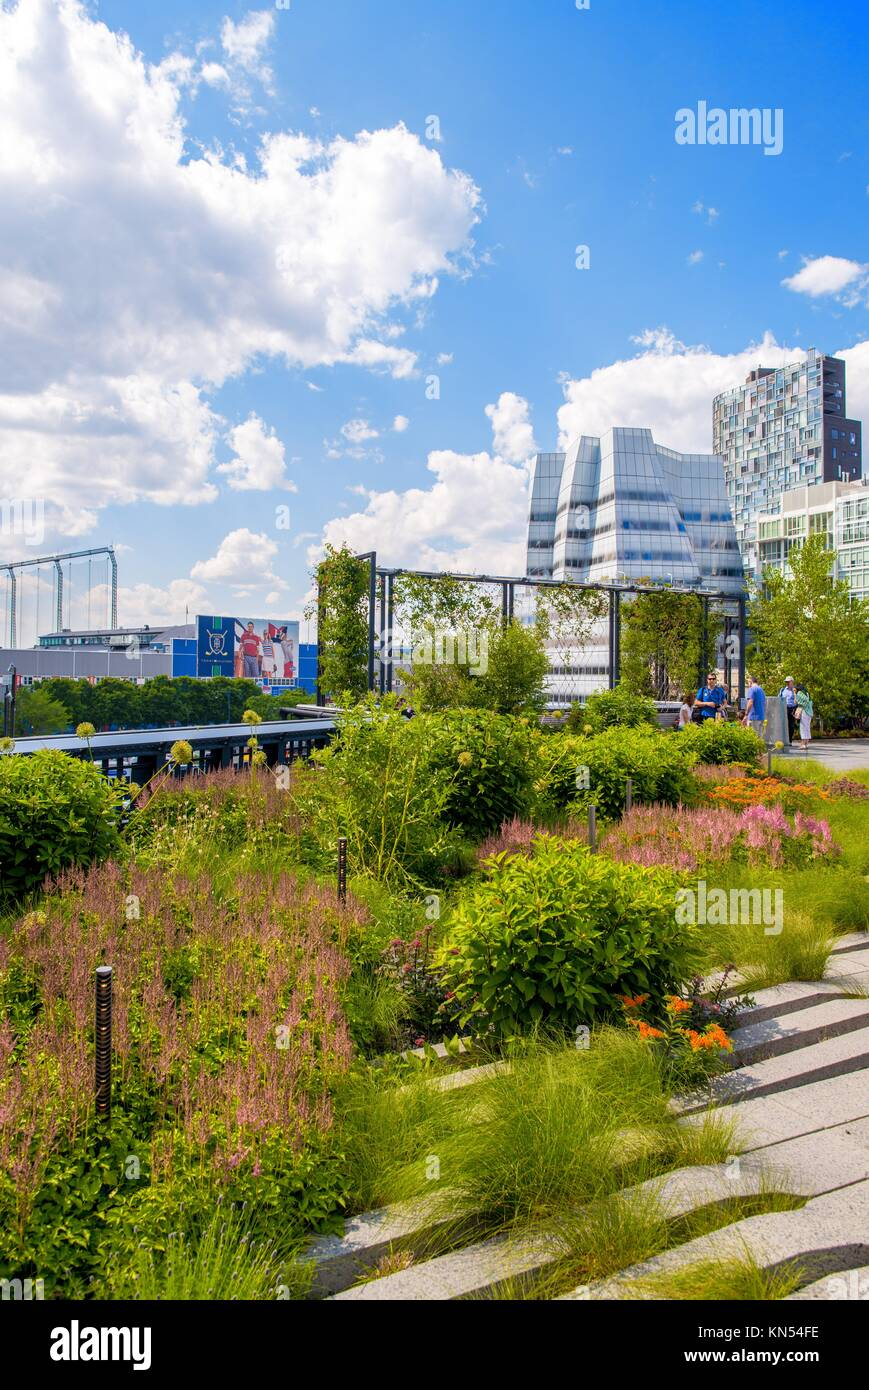 High Line Park in NYC. The High Line is a public park built on an historic freight rail line elevated above the Stock Photo